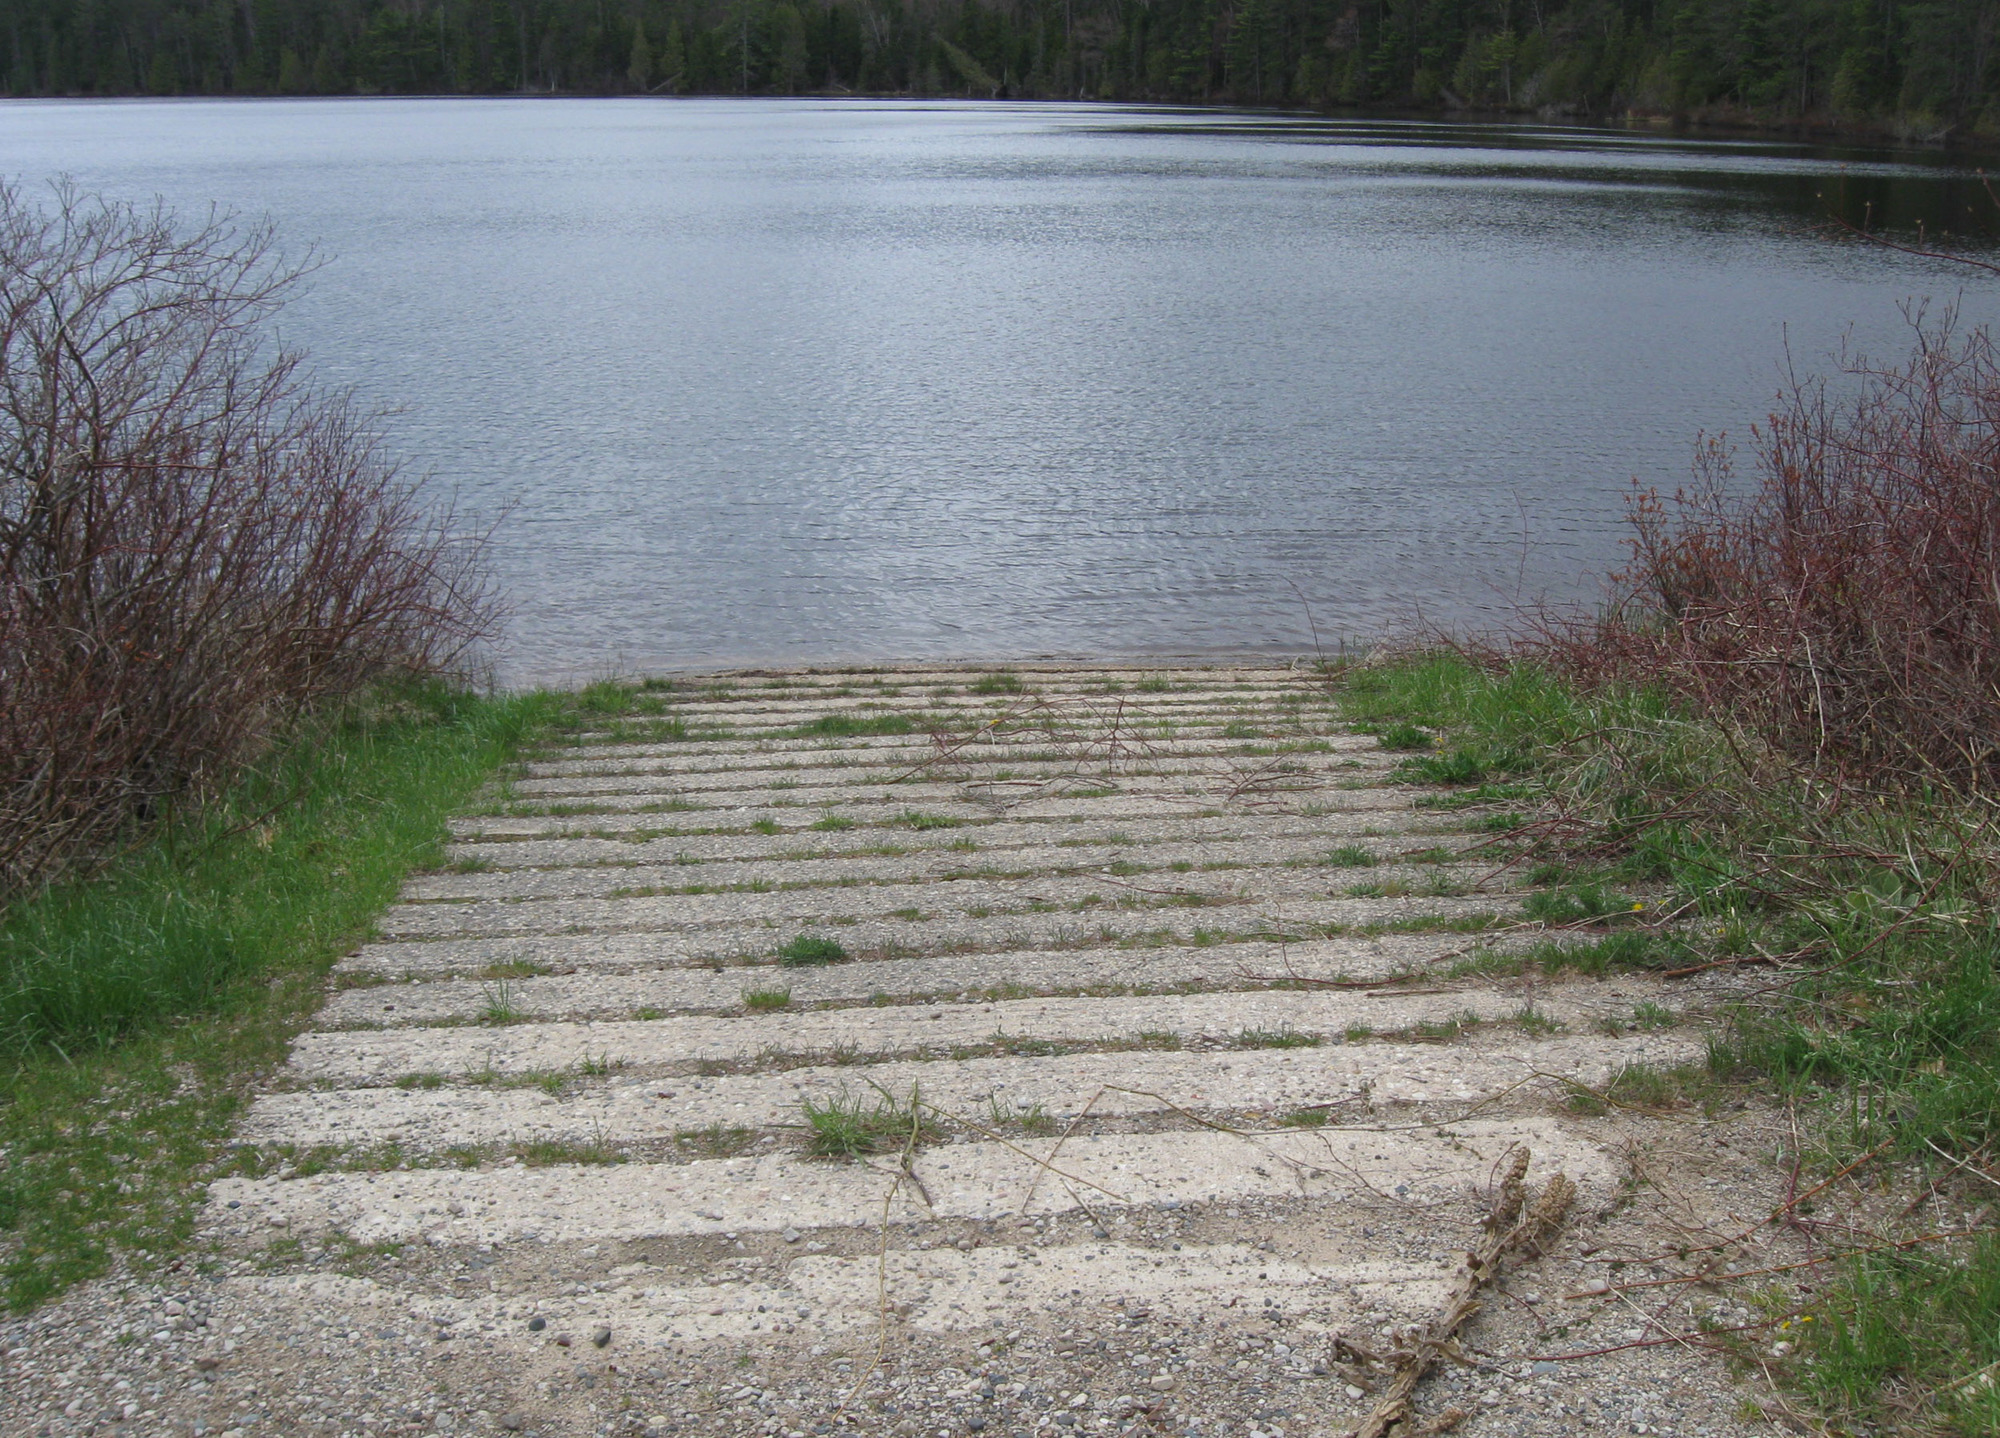 The boat ramp at the Culhane Lake State Forest Campground in Luce County is closed for replacement.